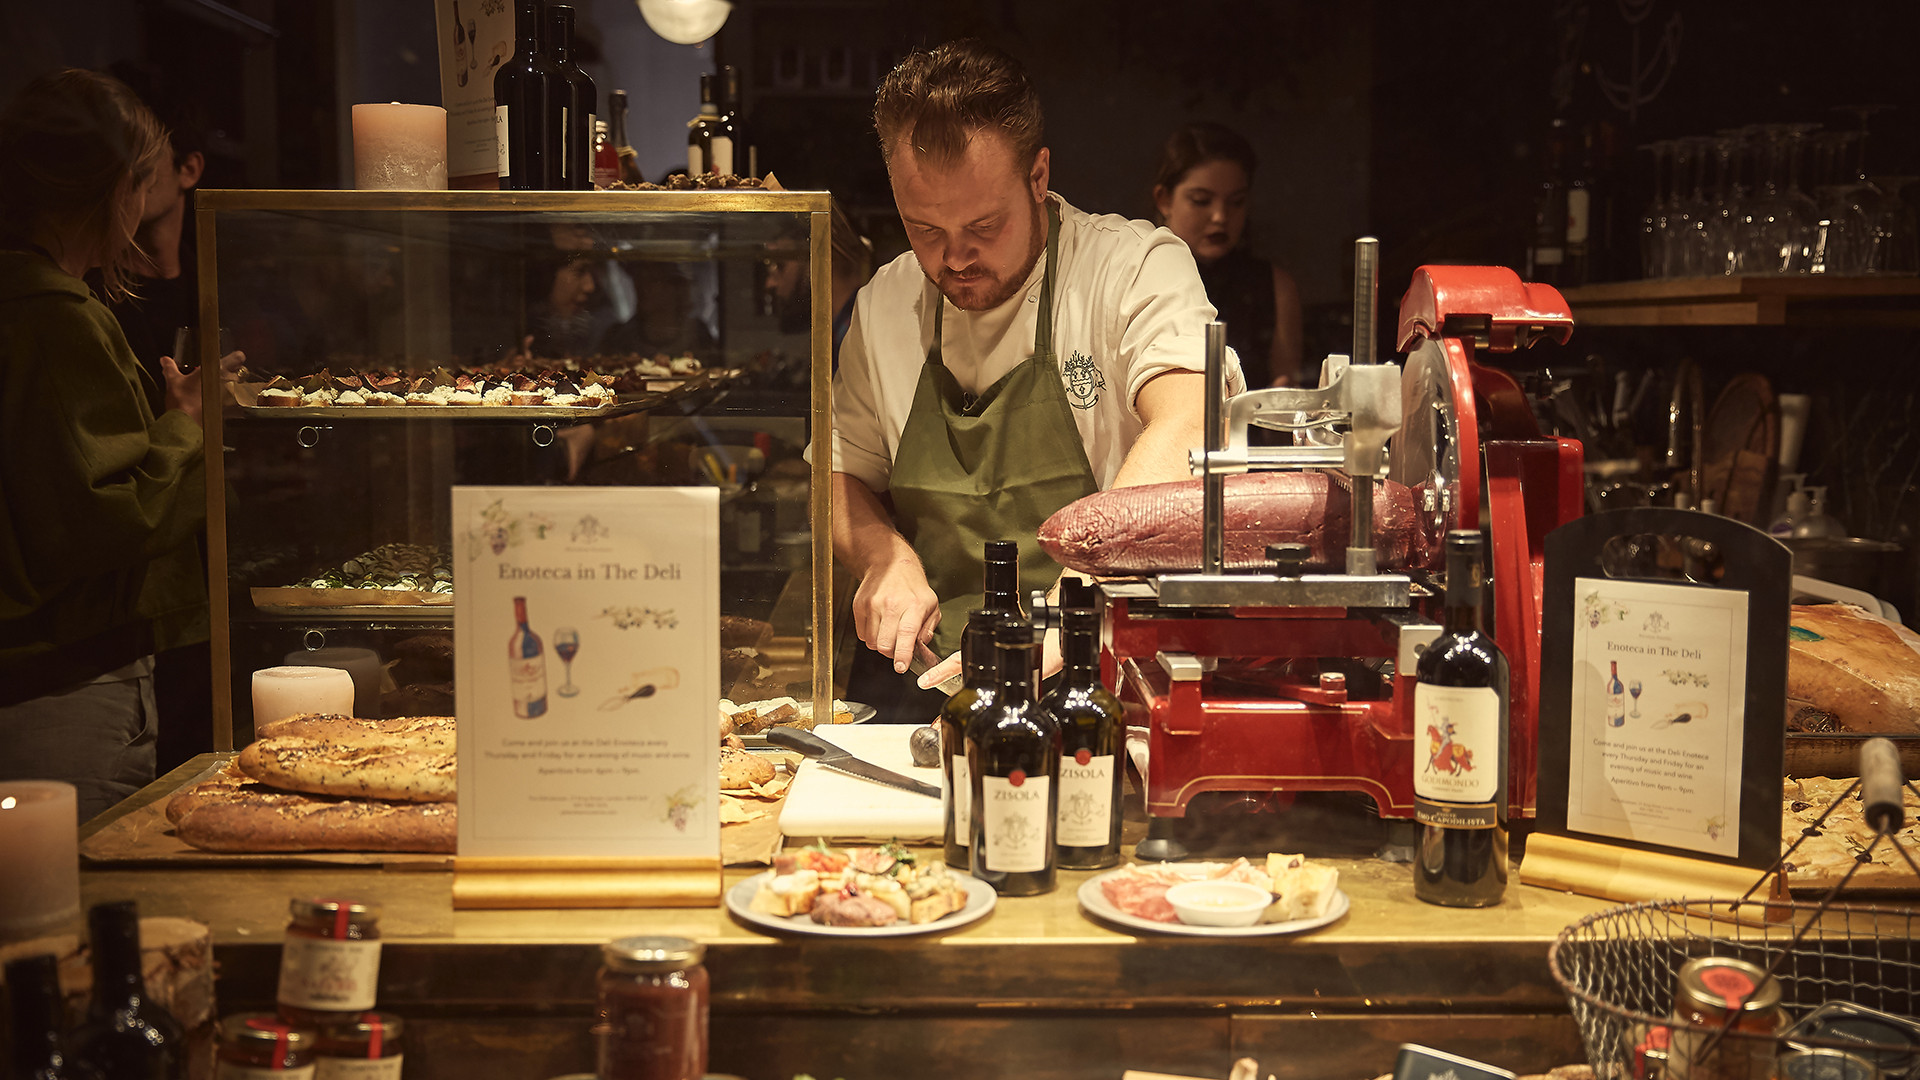 London's best aperitivo bars – Enoteca at The Delicatessen